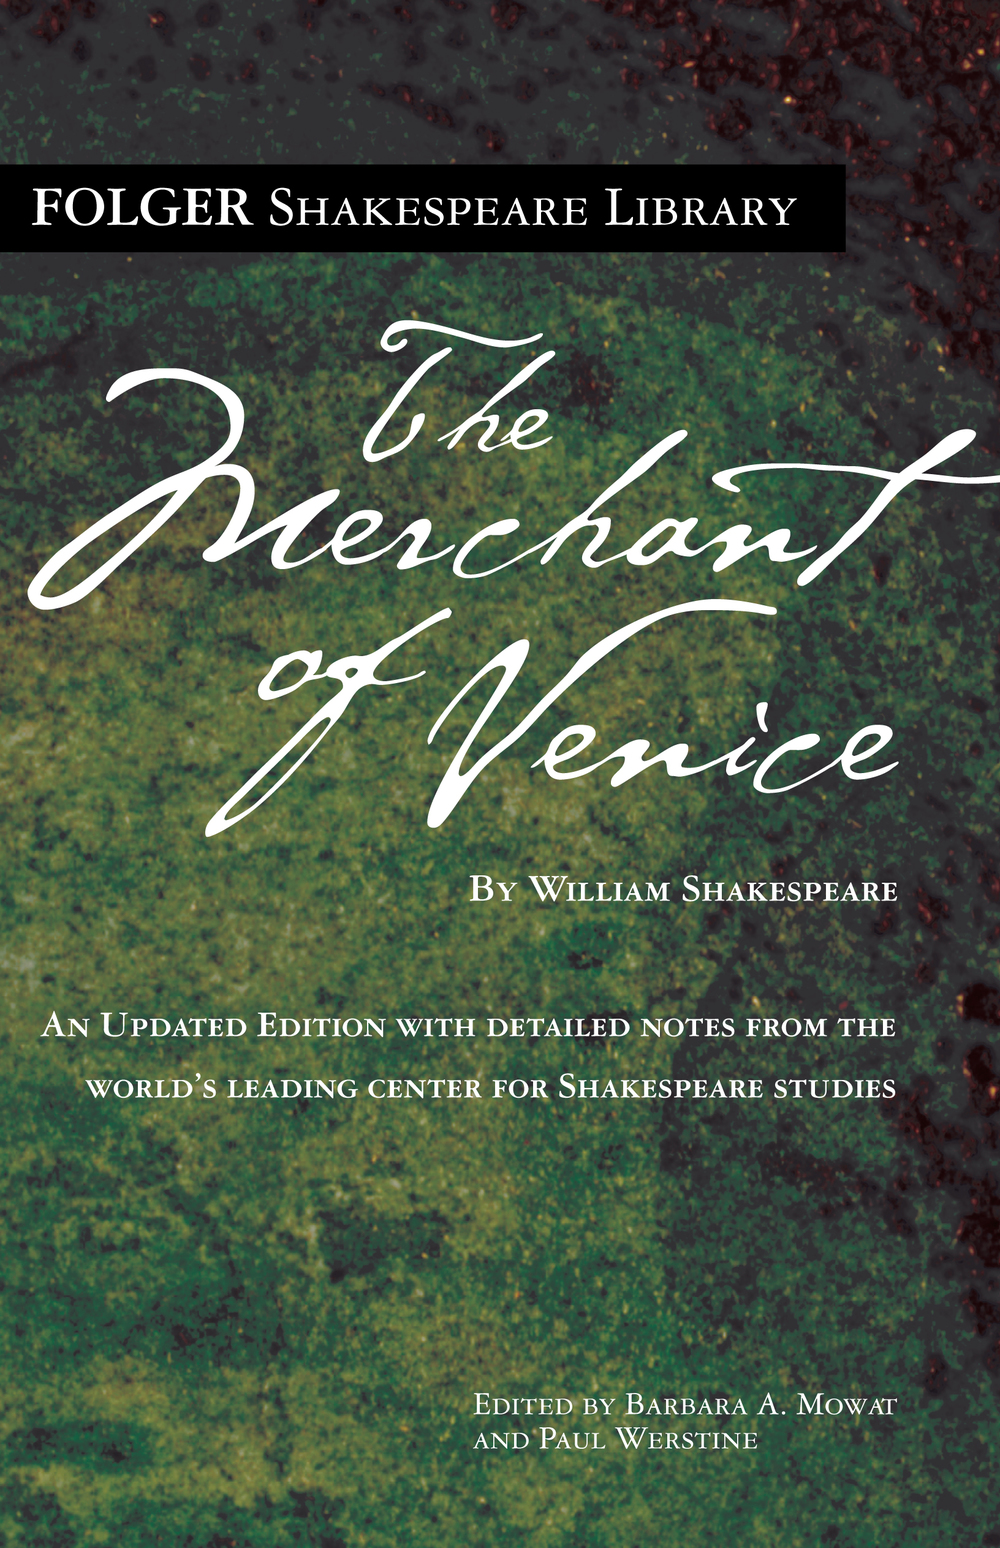 The Merchant of Venice by William Shakespeare.jpg